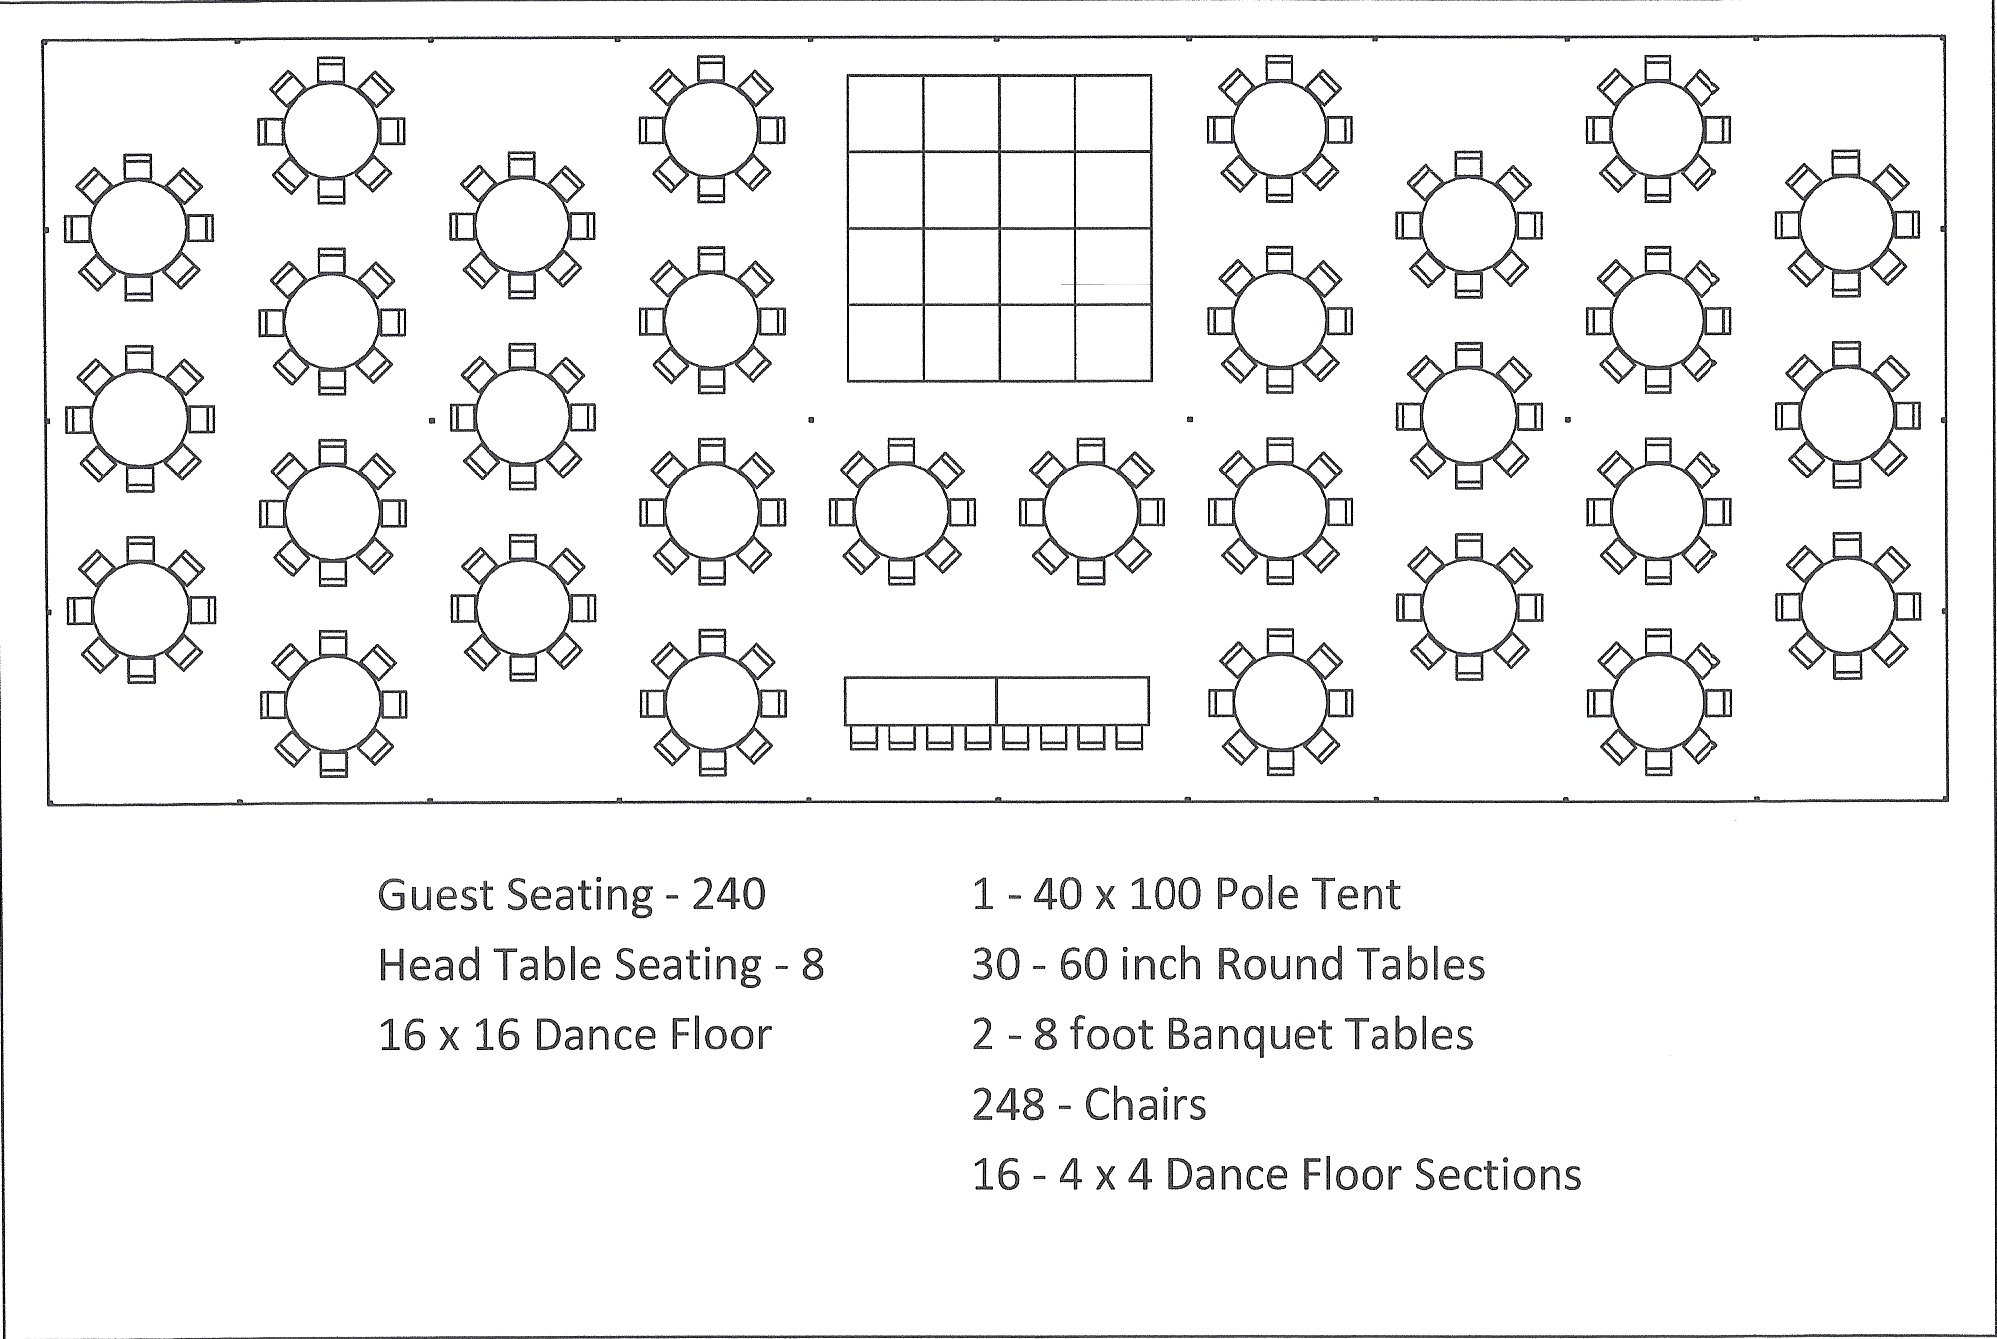 40 X 100 Pole Tent Seating Arrangement